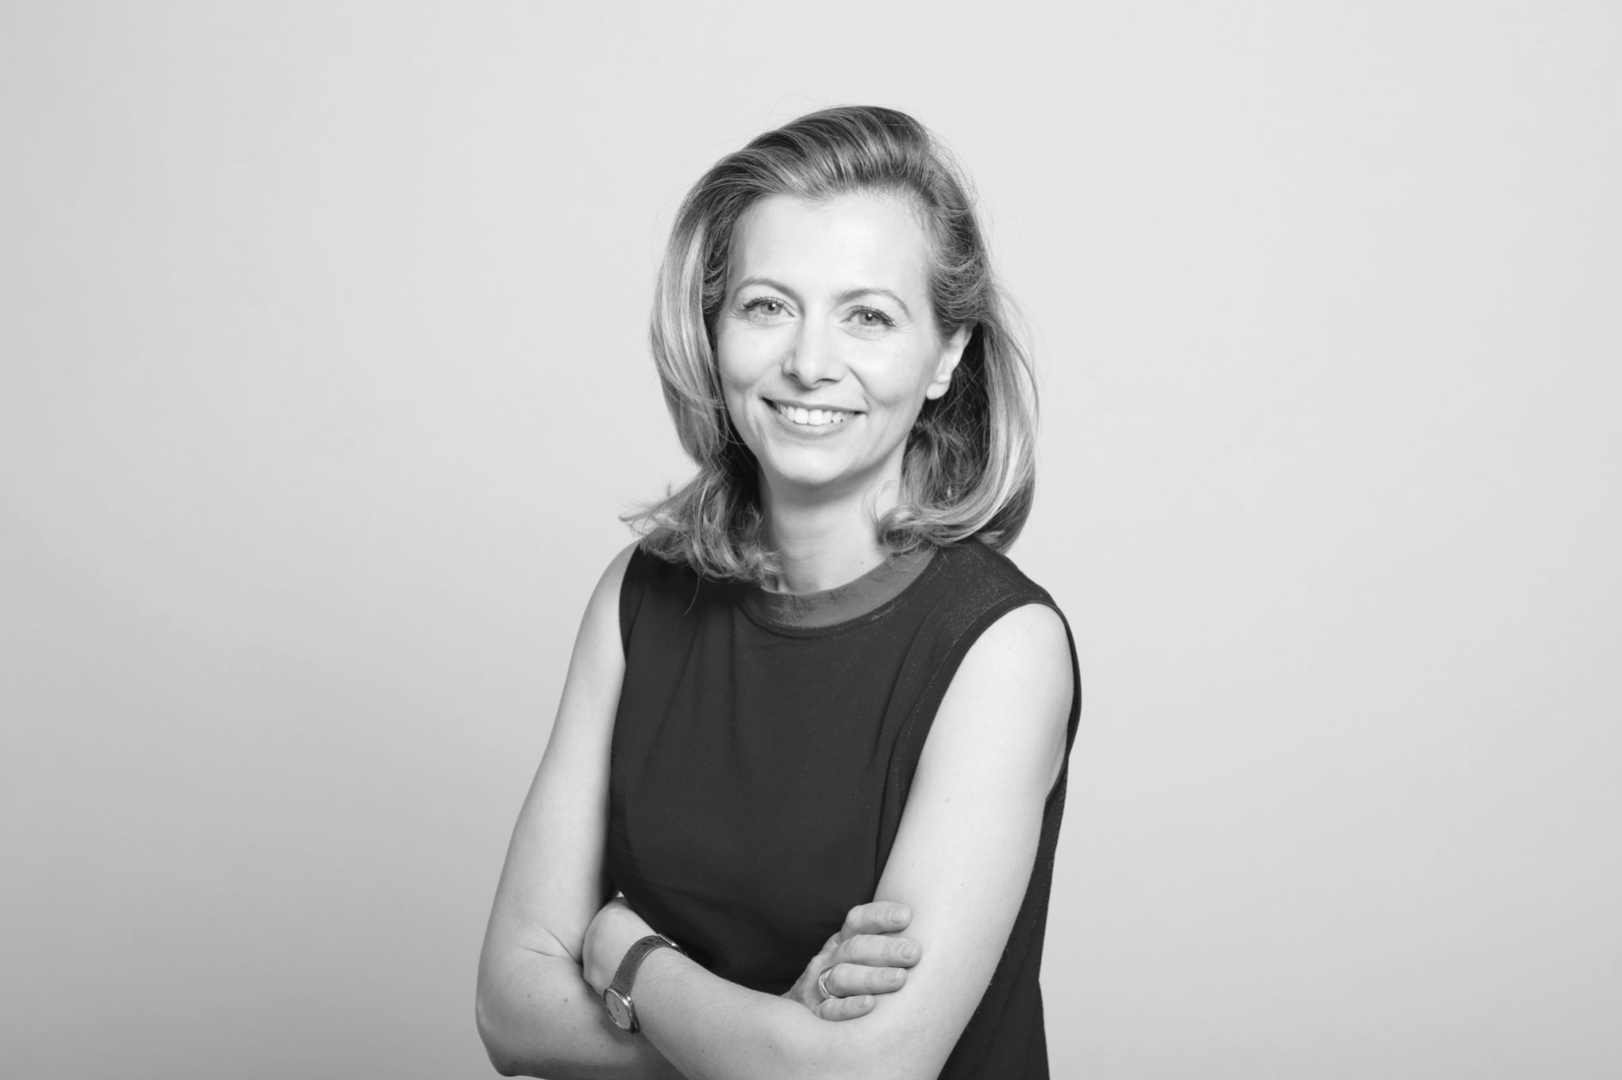 Béatrice Dumurgier joins BlaBlaCar as Chief Operating Officer